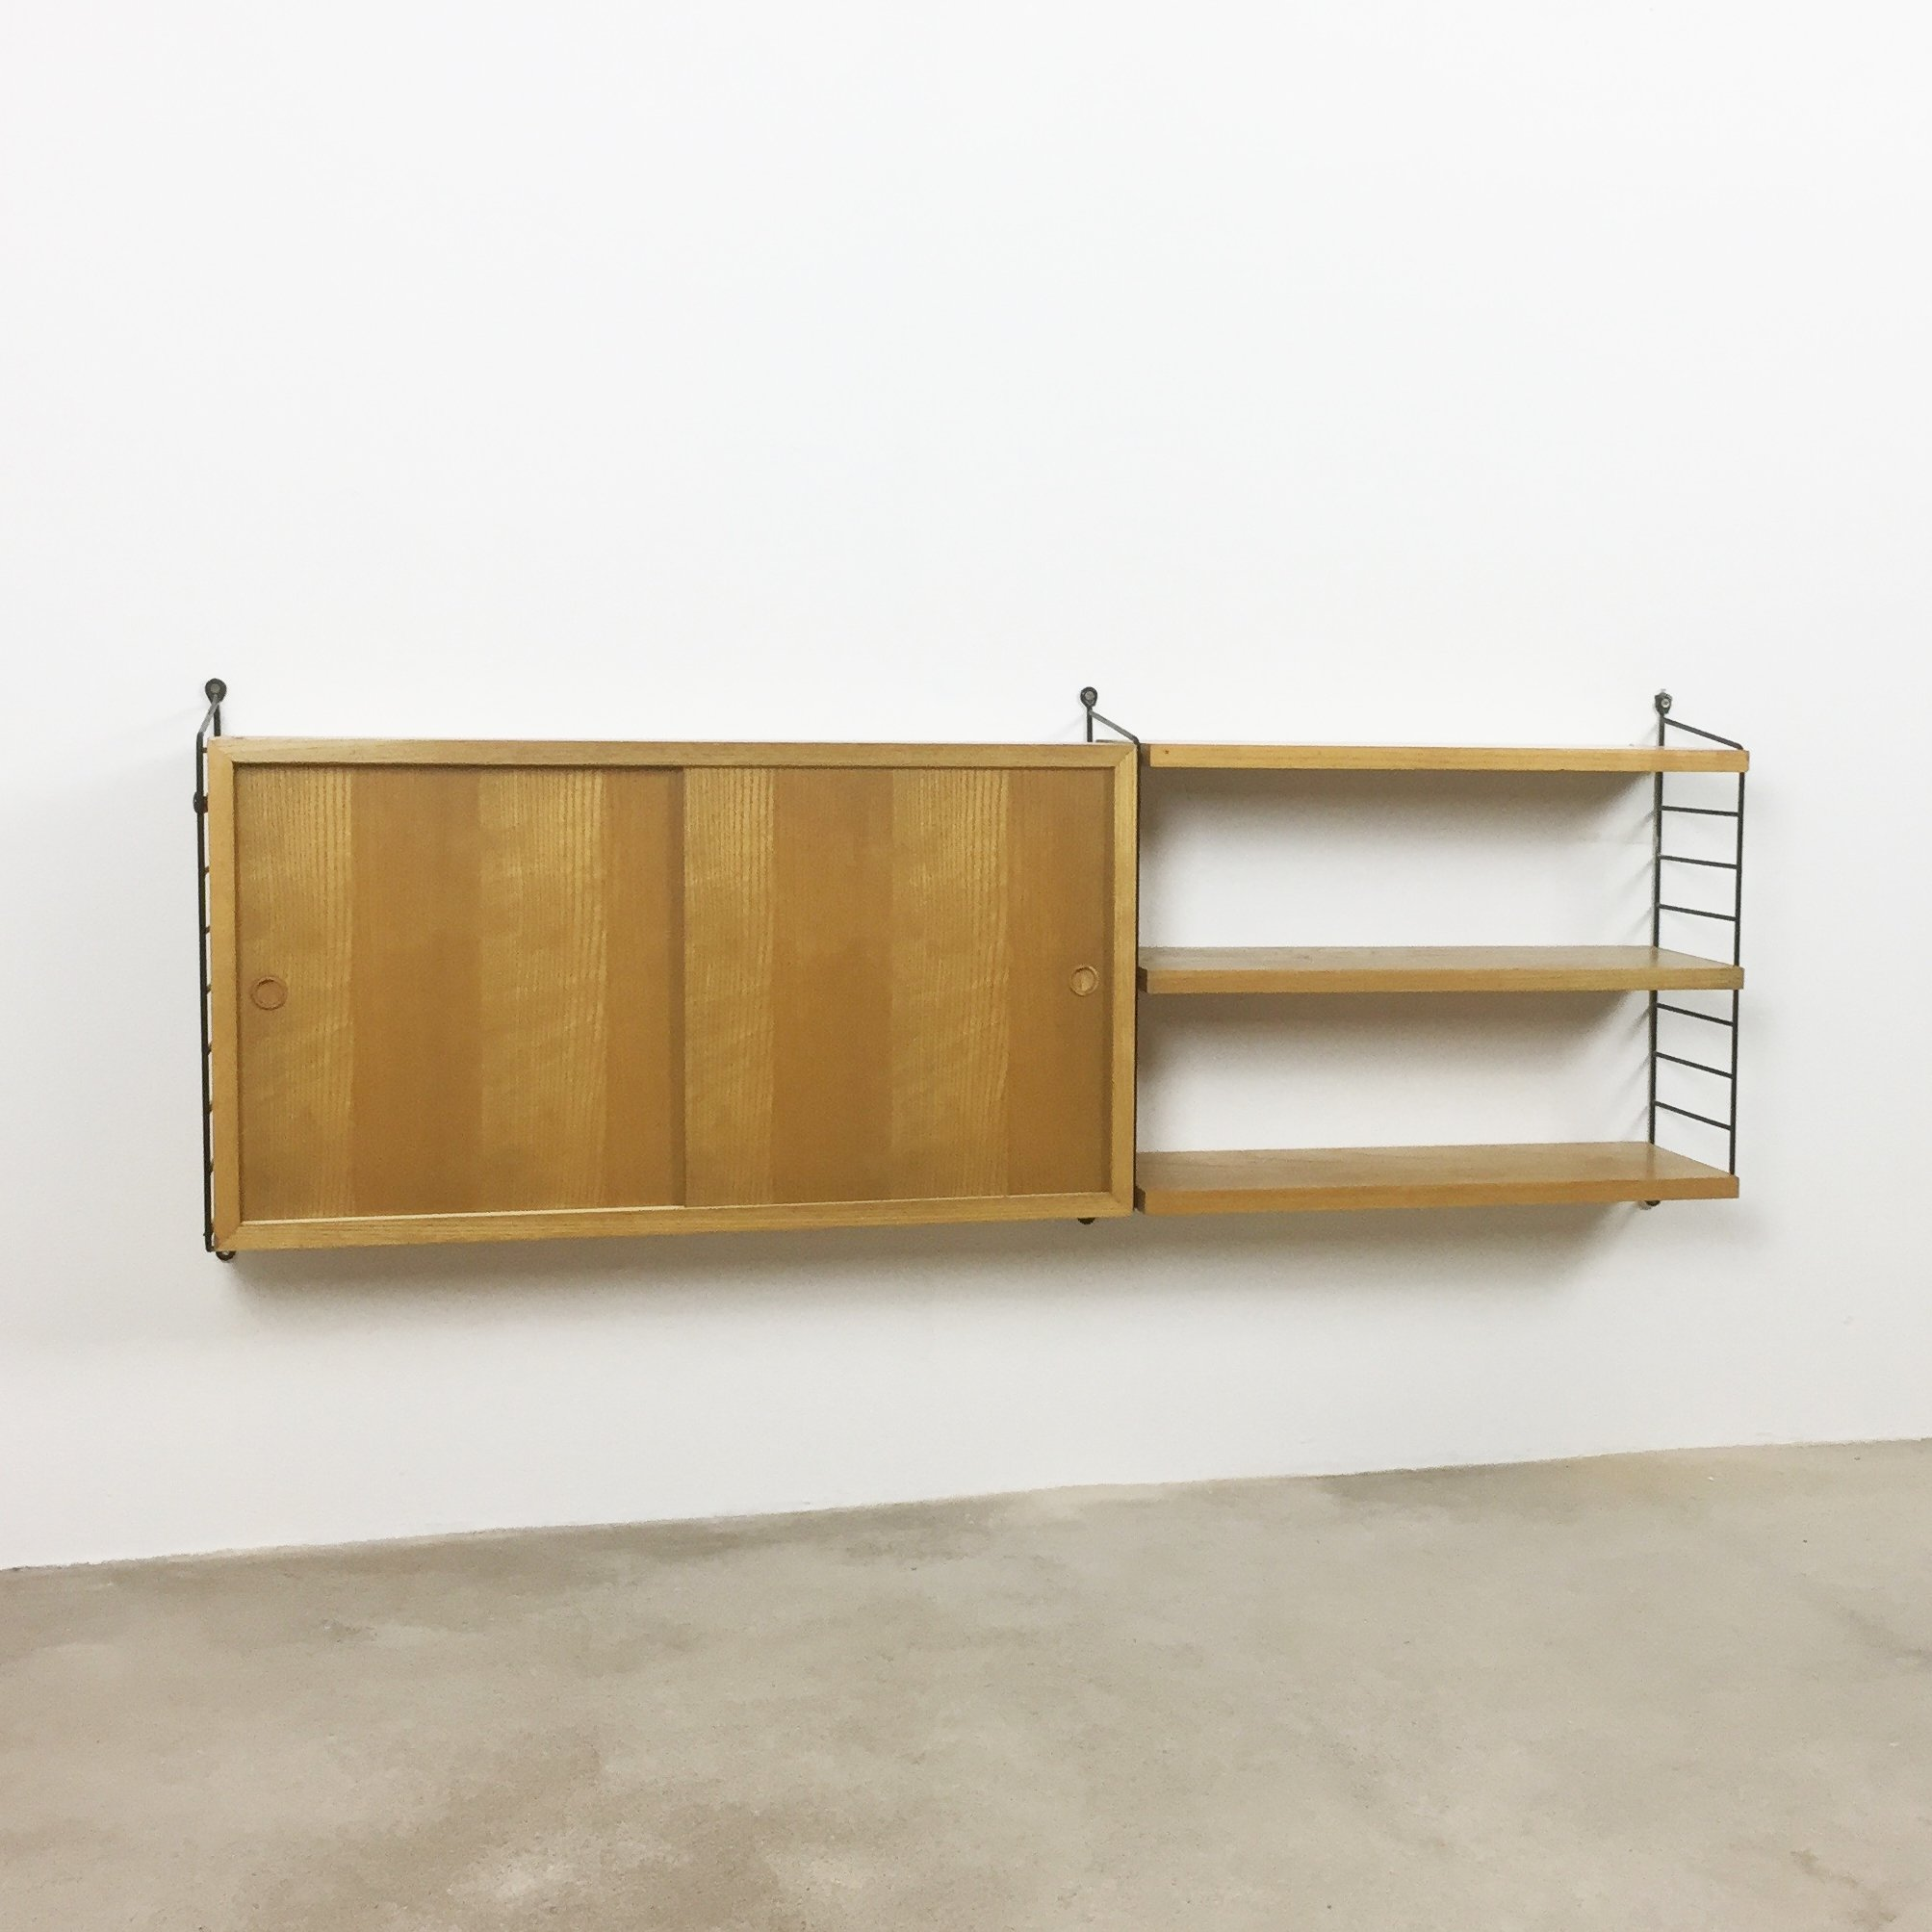 2 X Ash Wood Wall Unit By Nisse Strinning For String